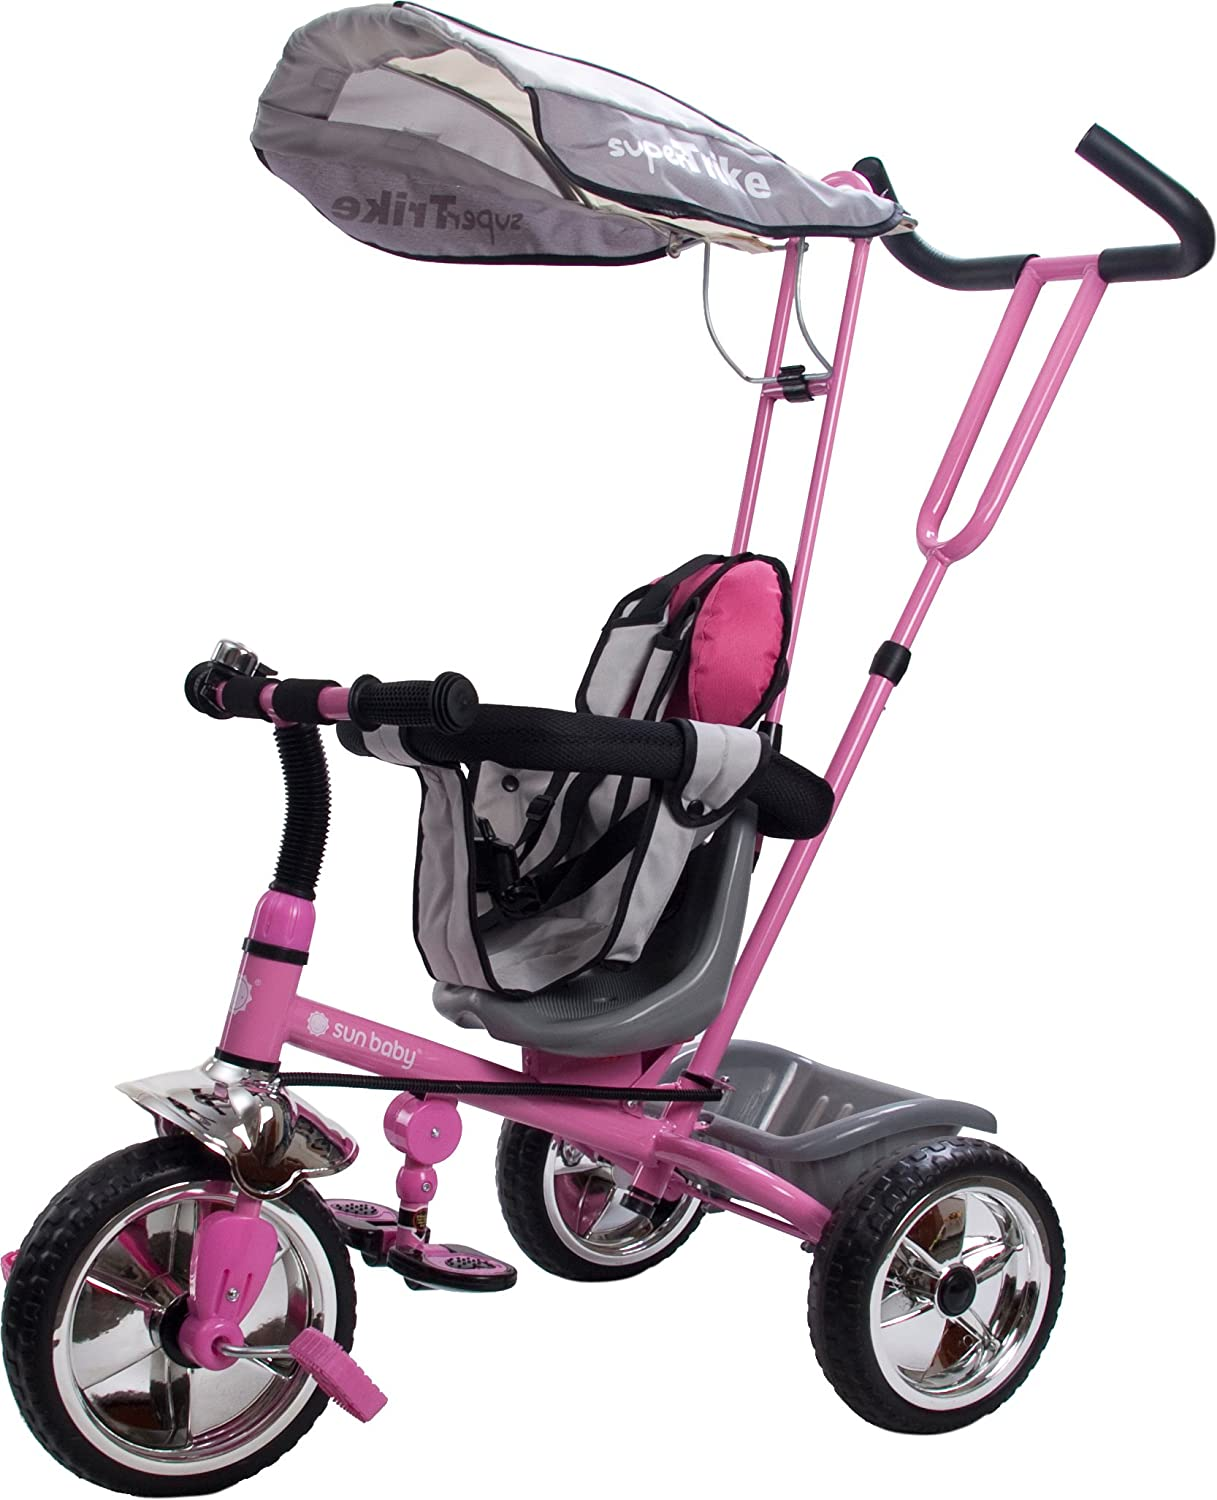 Rose Bonbon  Sun   Tricycle avec toit - version allehommede